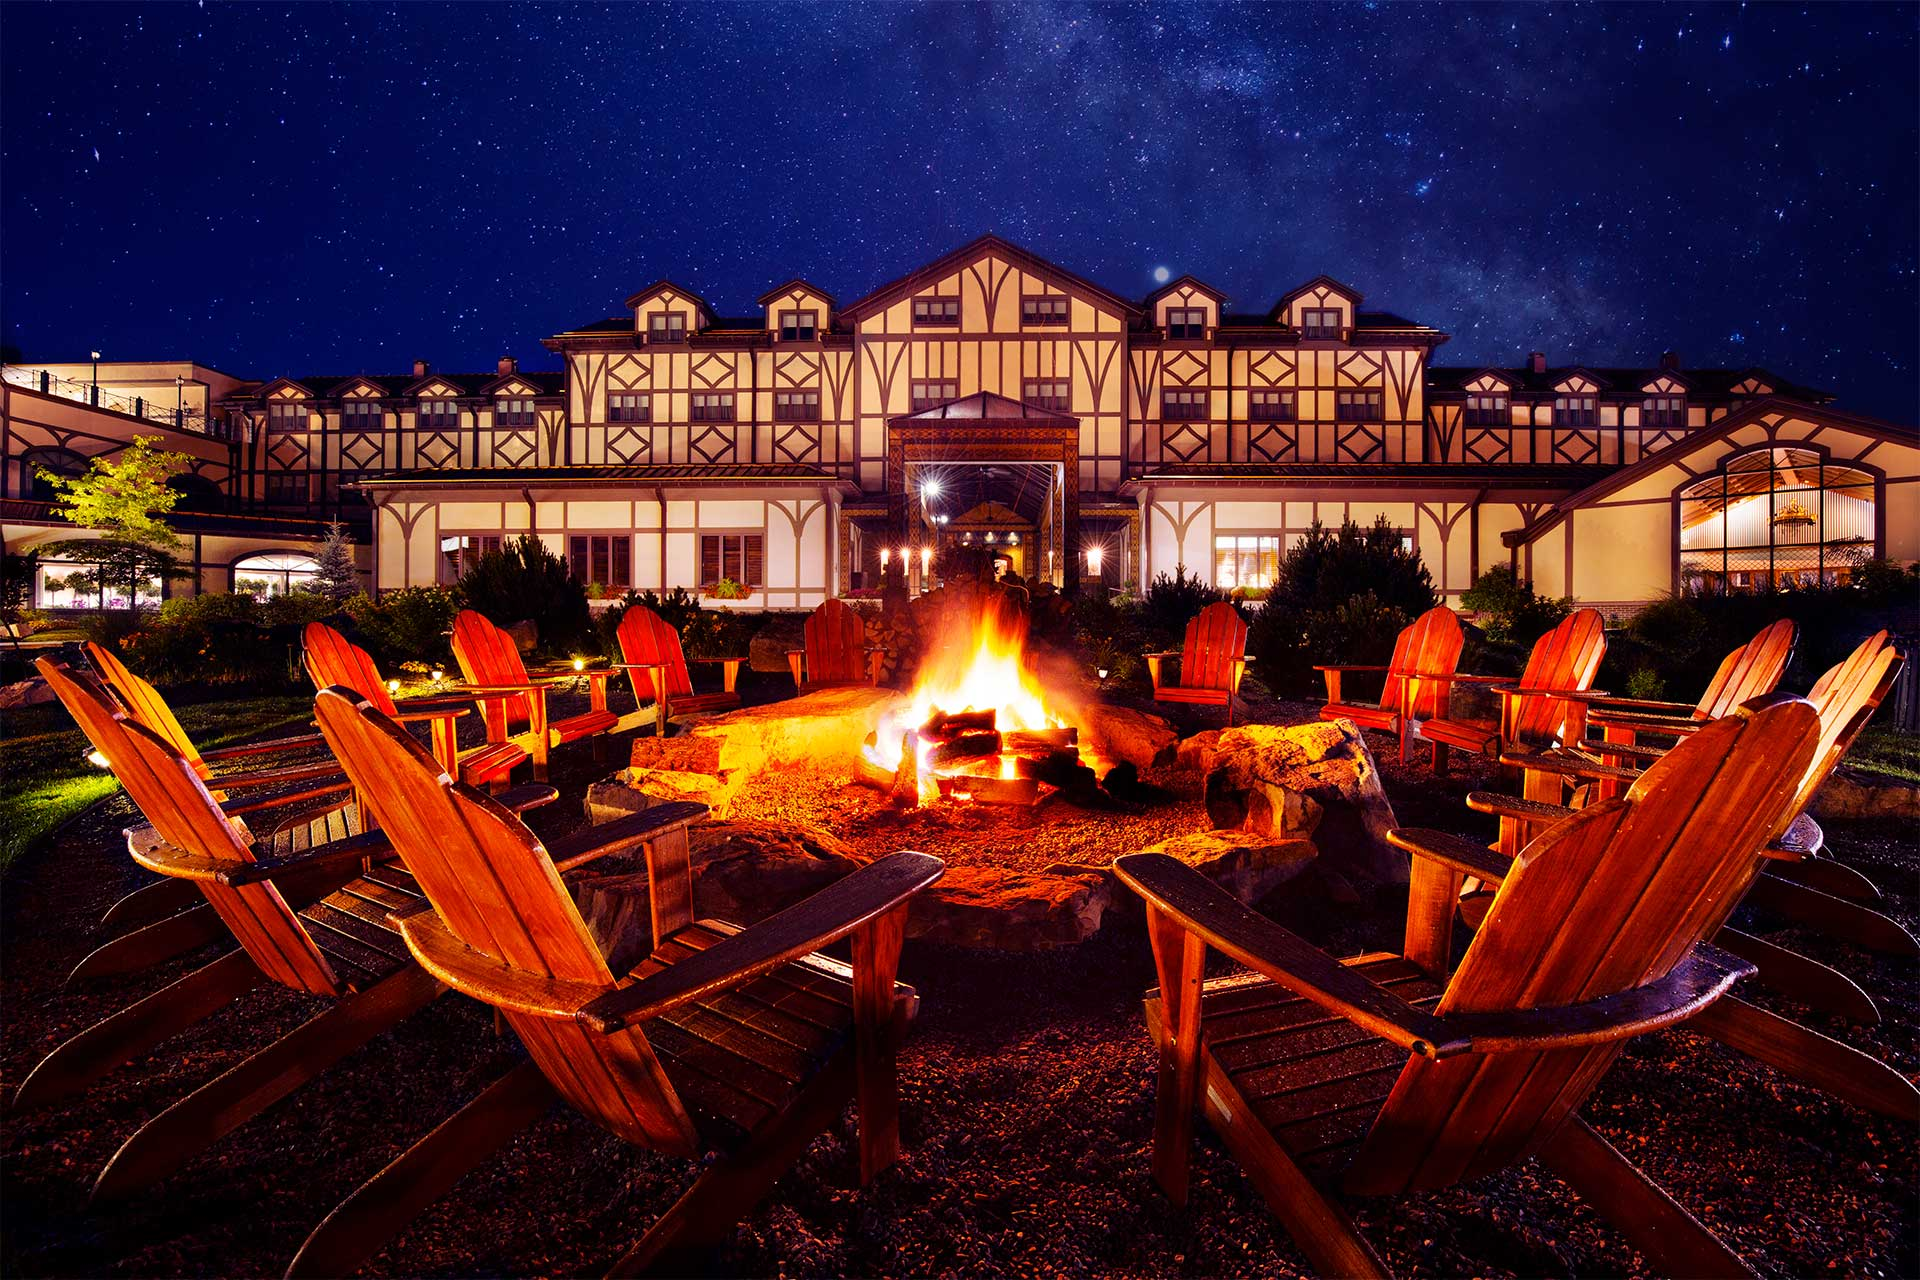 A large fire pit surrounded by chairs in front of a large lodge